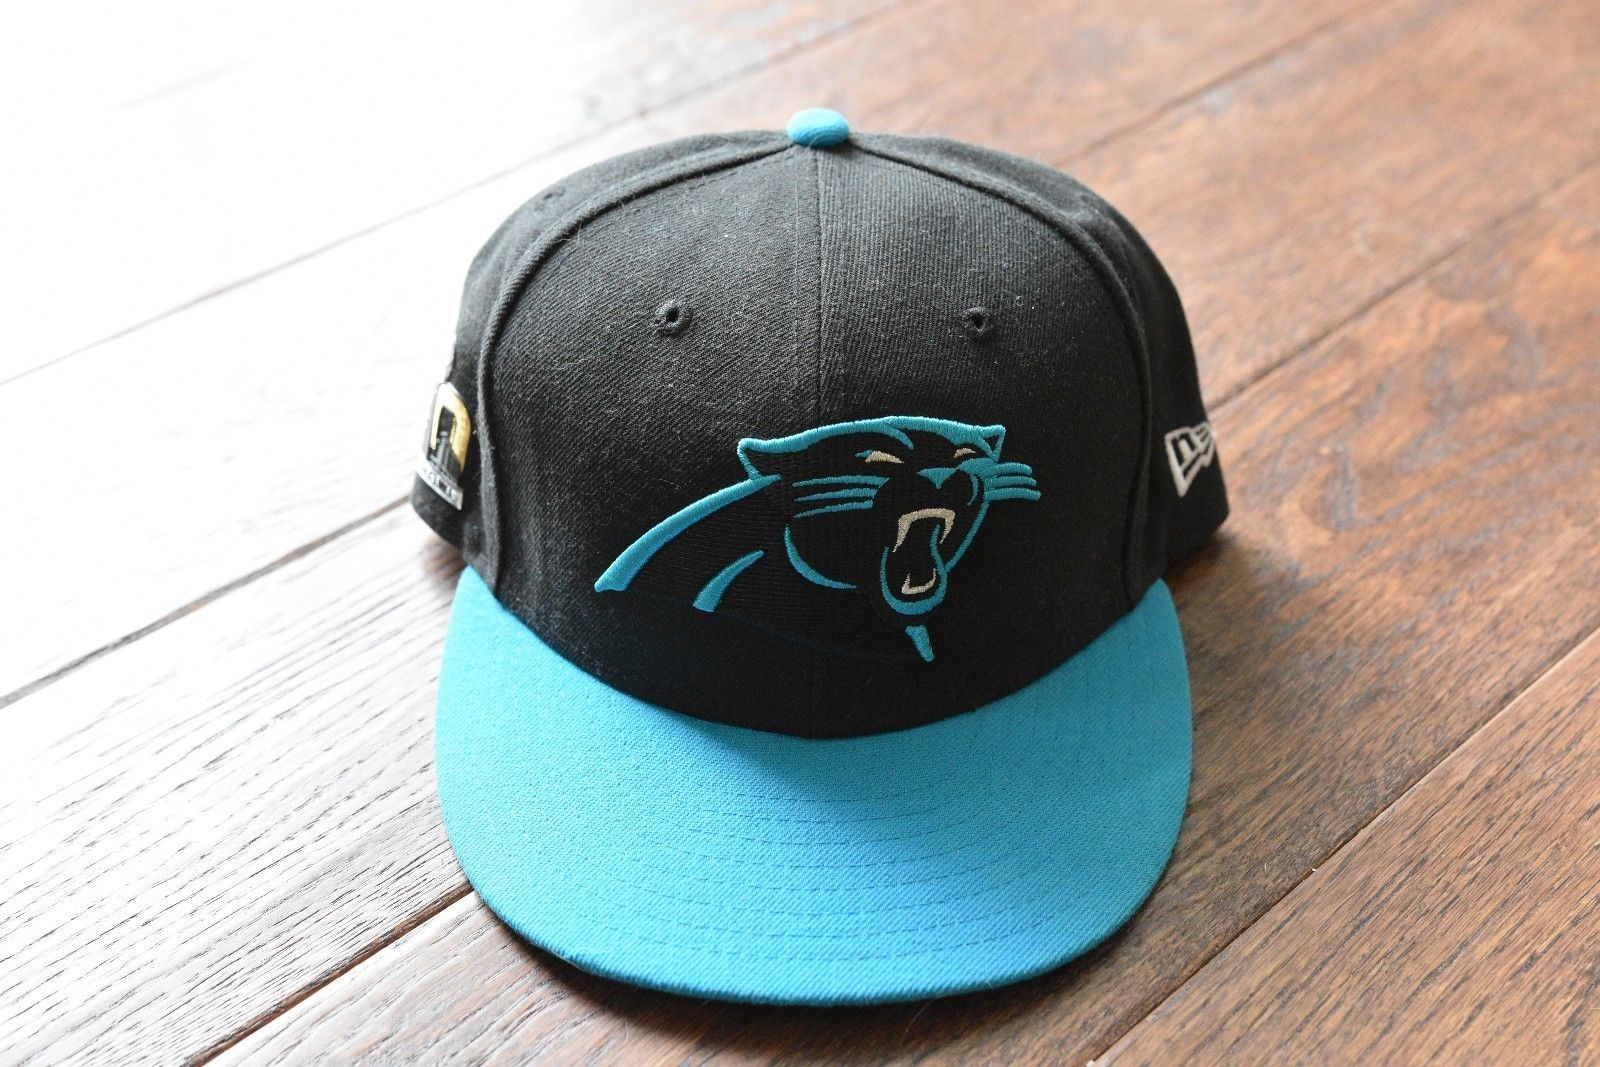 Carolina Panthers Super Bowl 50 Hat 7 1 2 and 50 similar items. S l1600 4e857554c